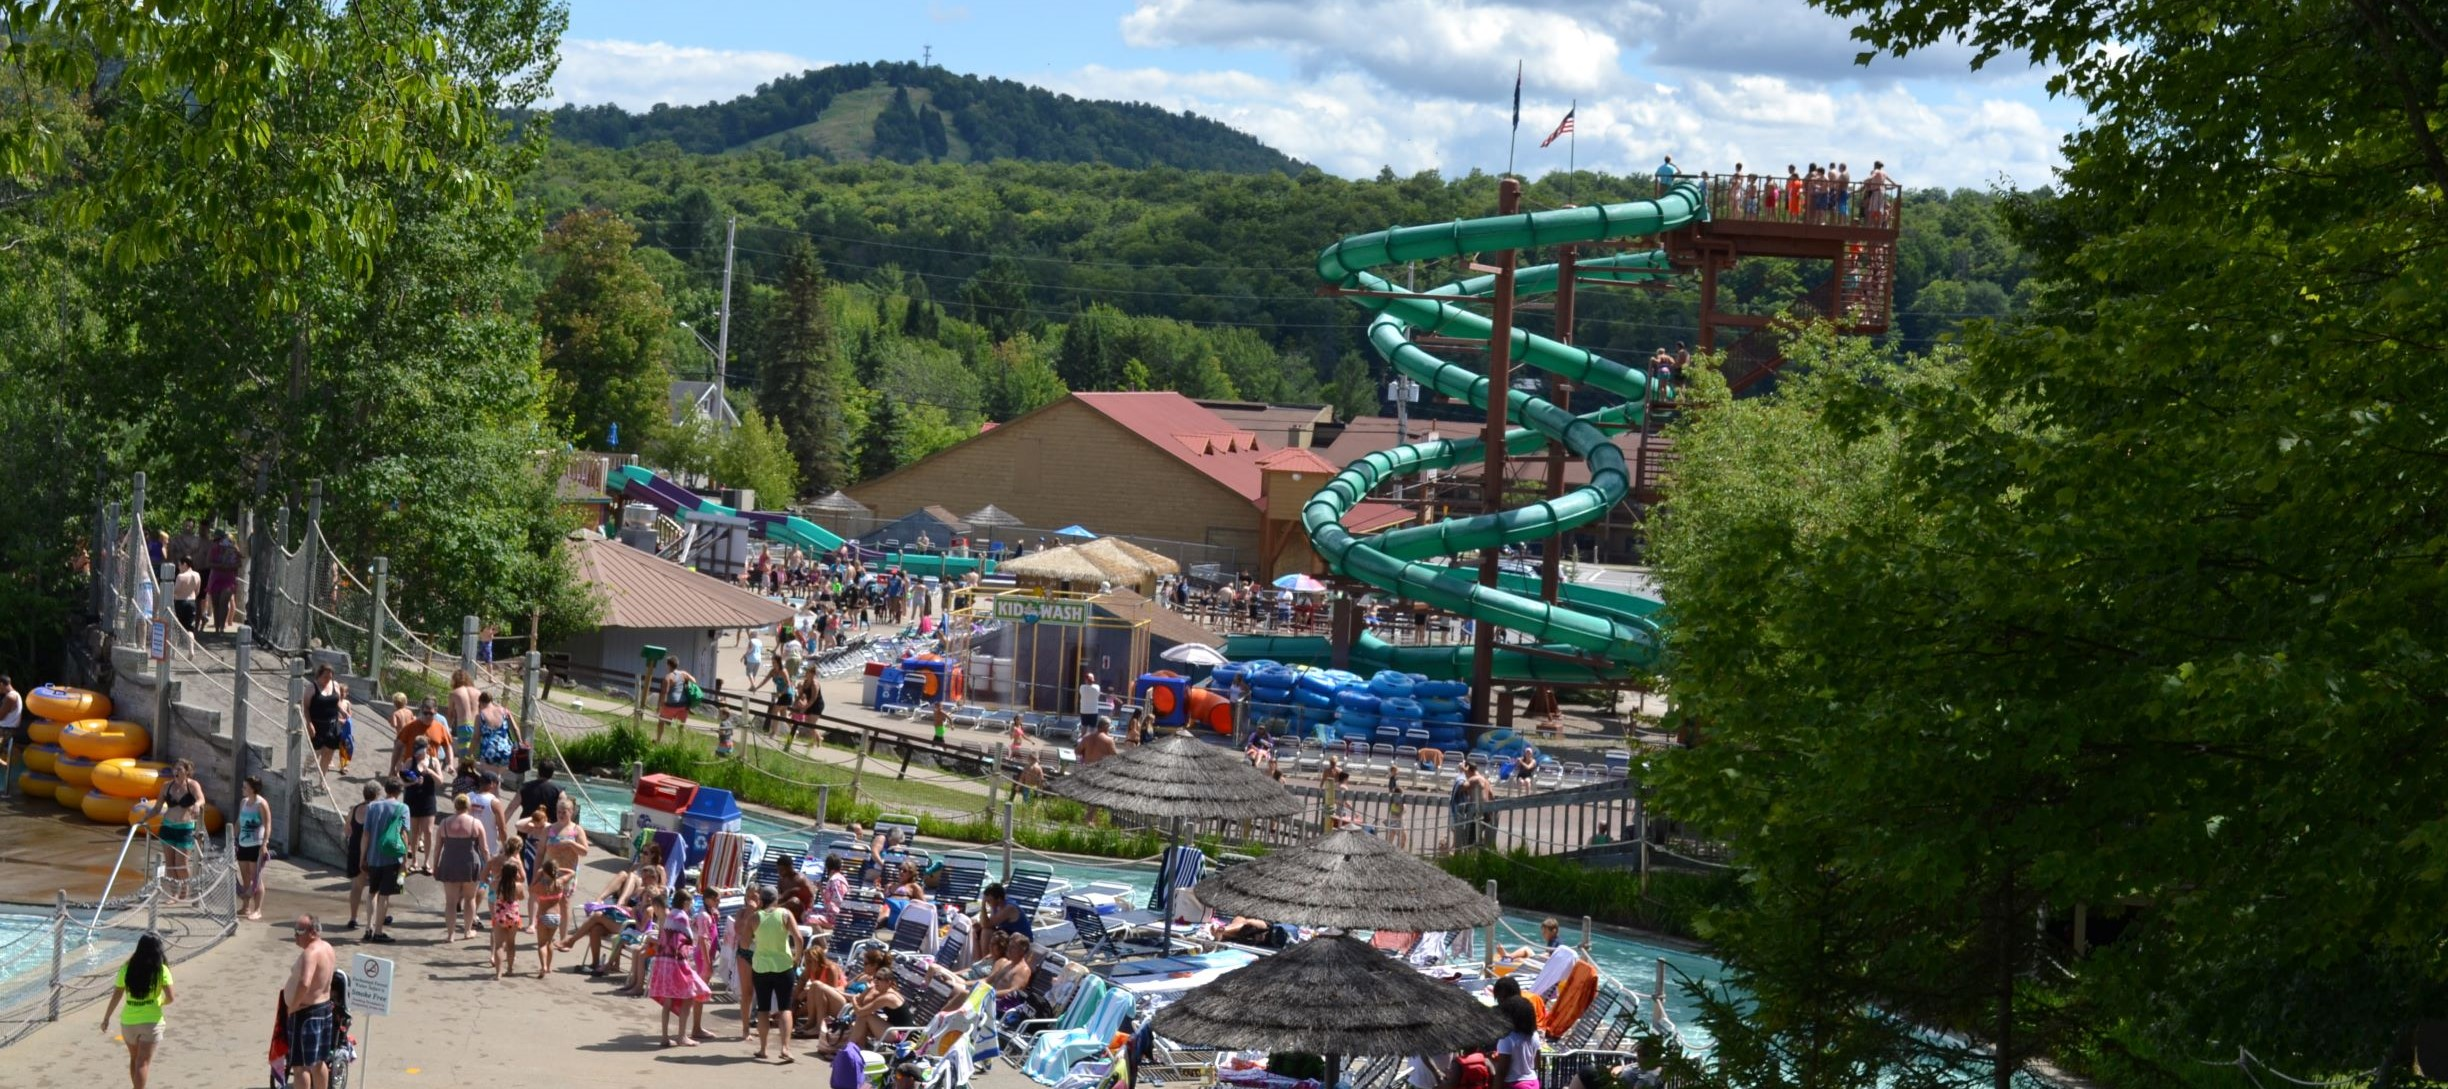 Enchanted Forest Water Safari Ranked in Top 5 Water Parks in the US